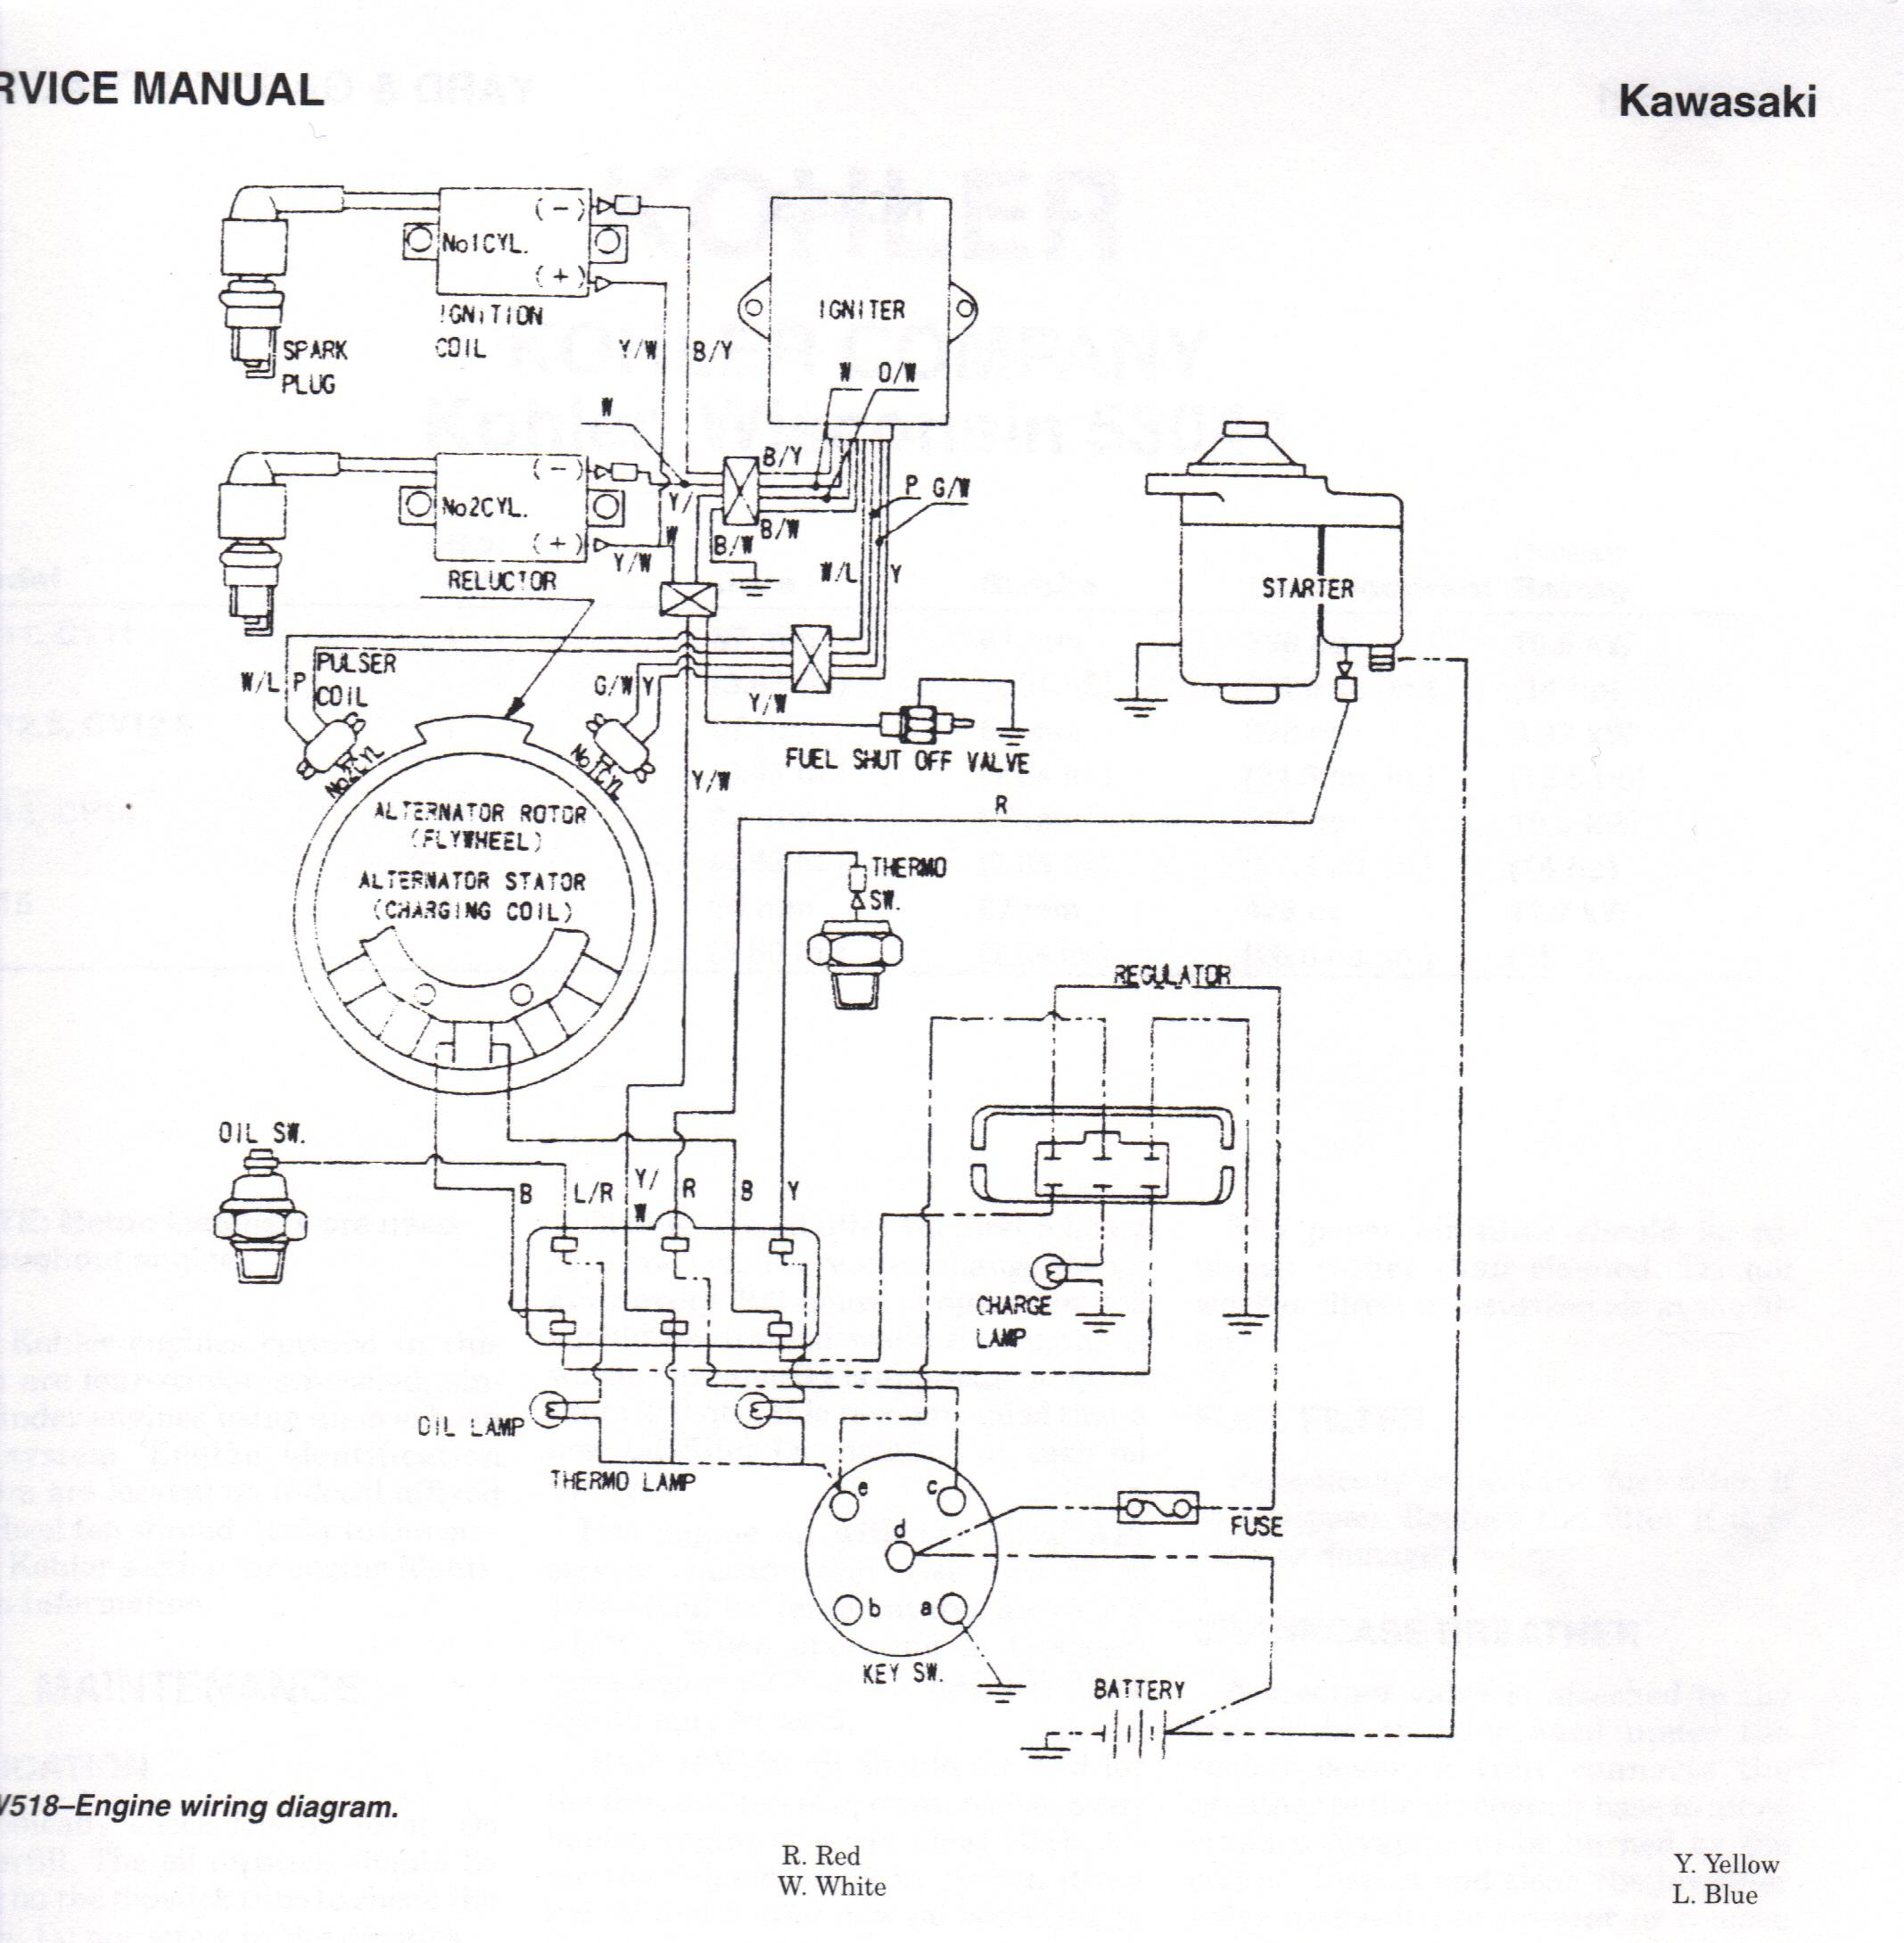 Jd 345 Wiring Diagram | Wiring Schematic Diagram Ignition Wiring Diagram For John Deere Lt on